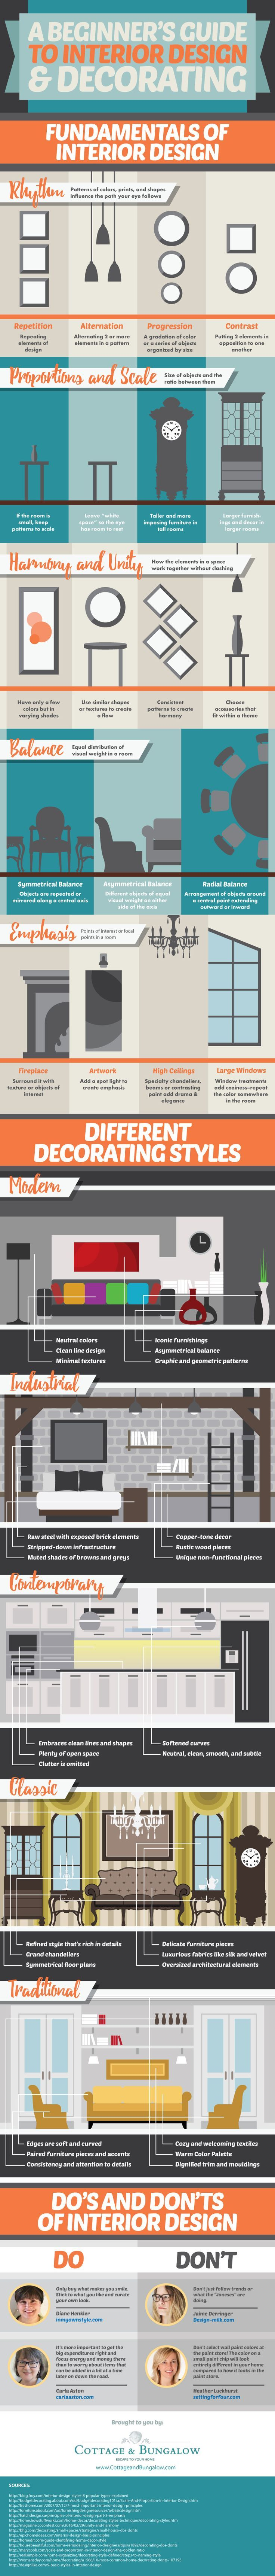 A Beginners Guide To Interior Design And Decorating Infographic